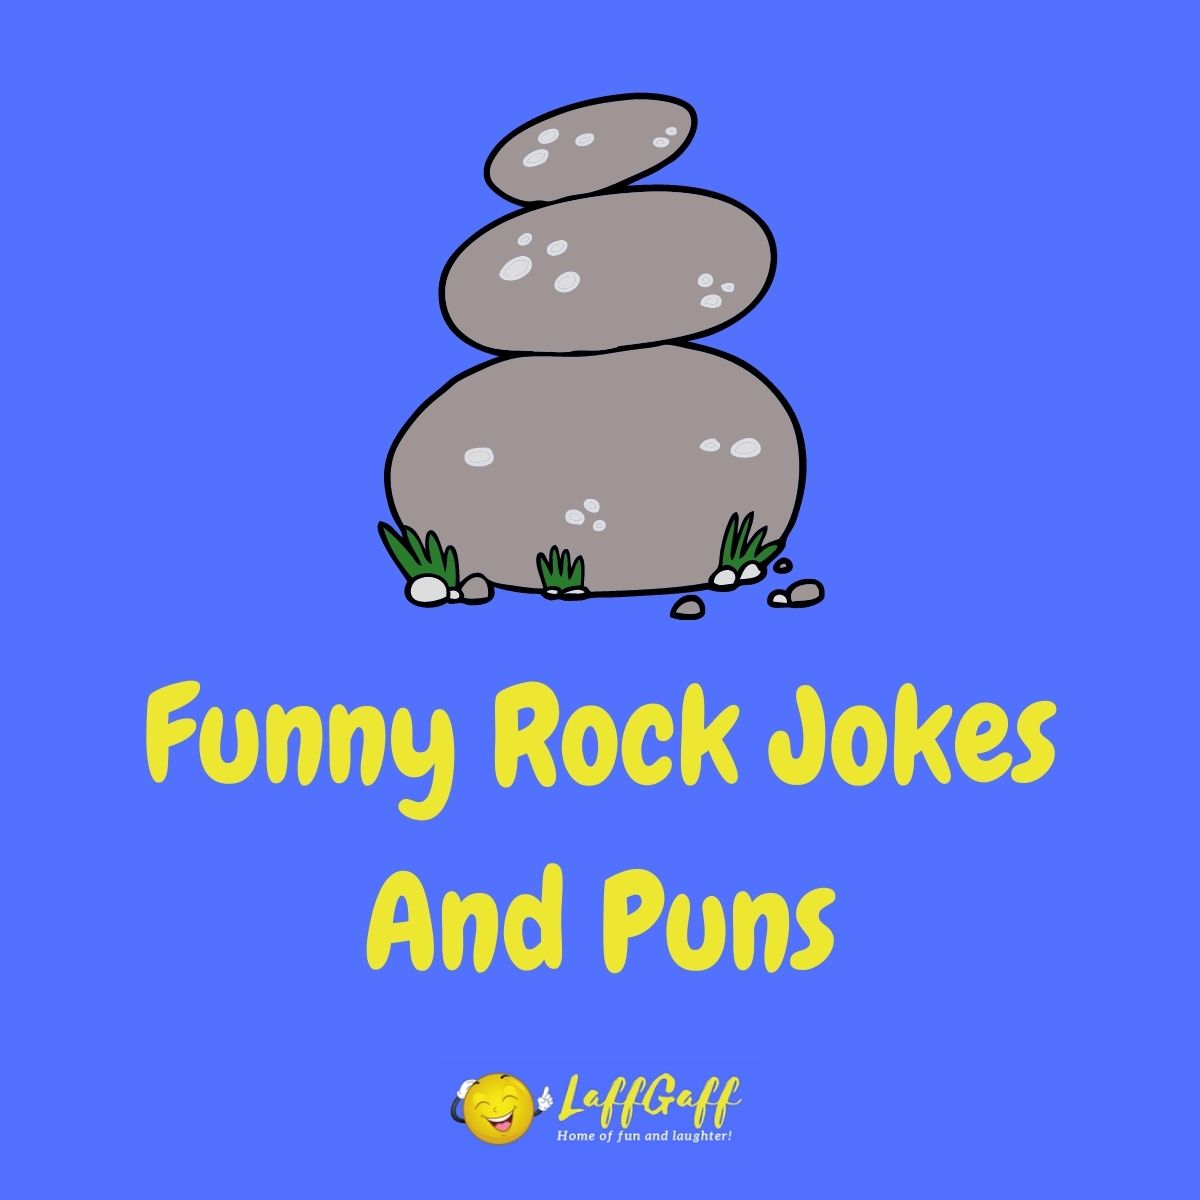 Featured image for a page of funny rock jokes and puns.